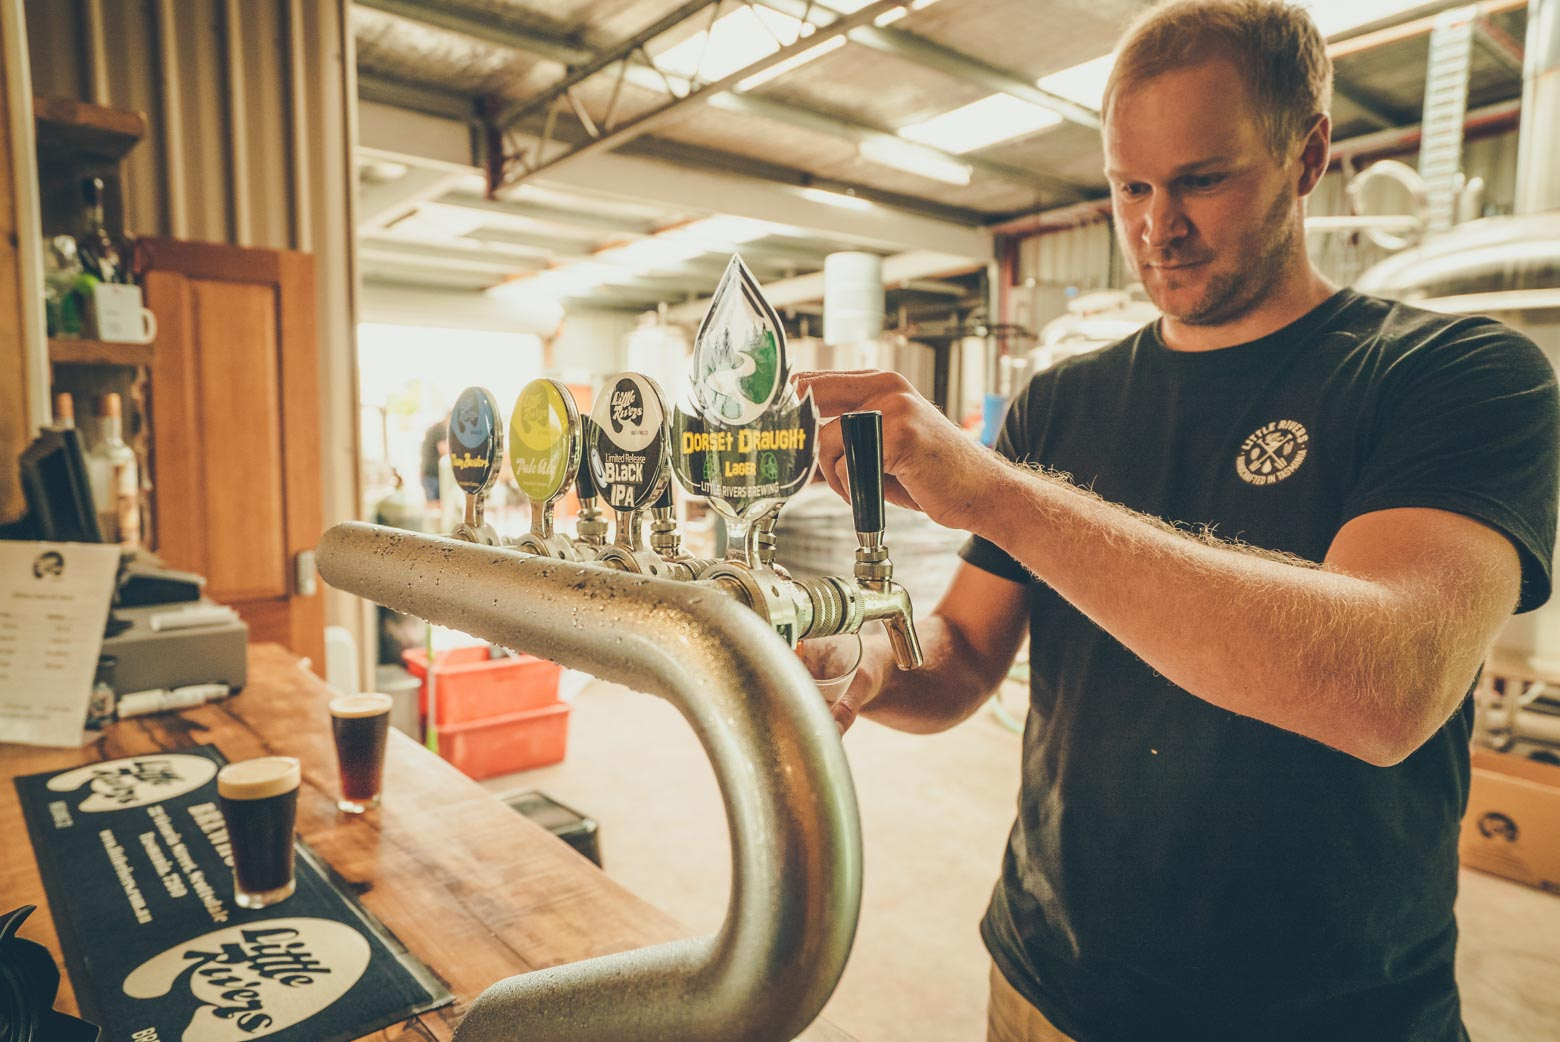 Try the beers at Little Rivers Brewing Co. on your Lap of Tasmania road trip